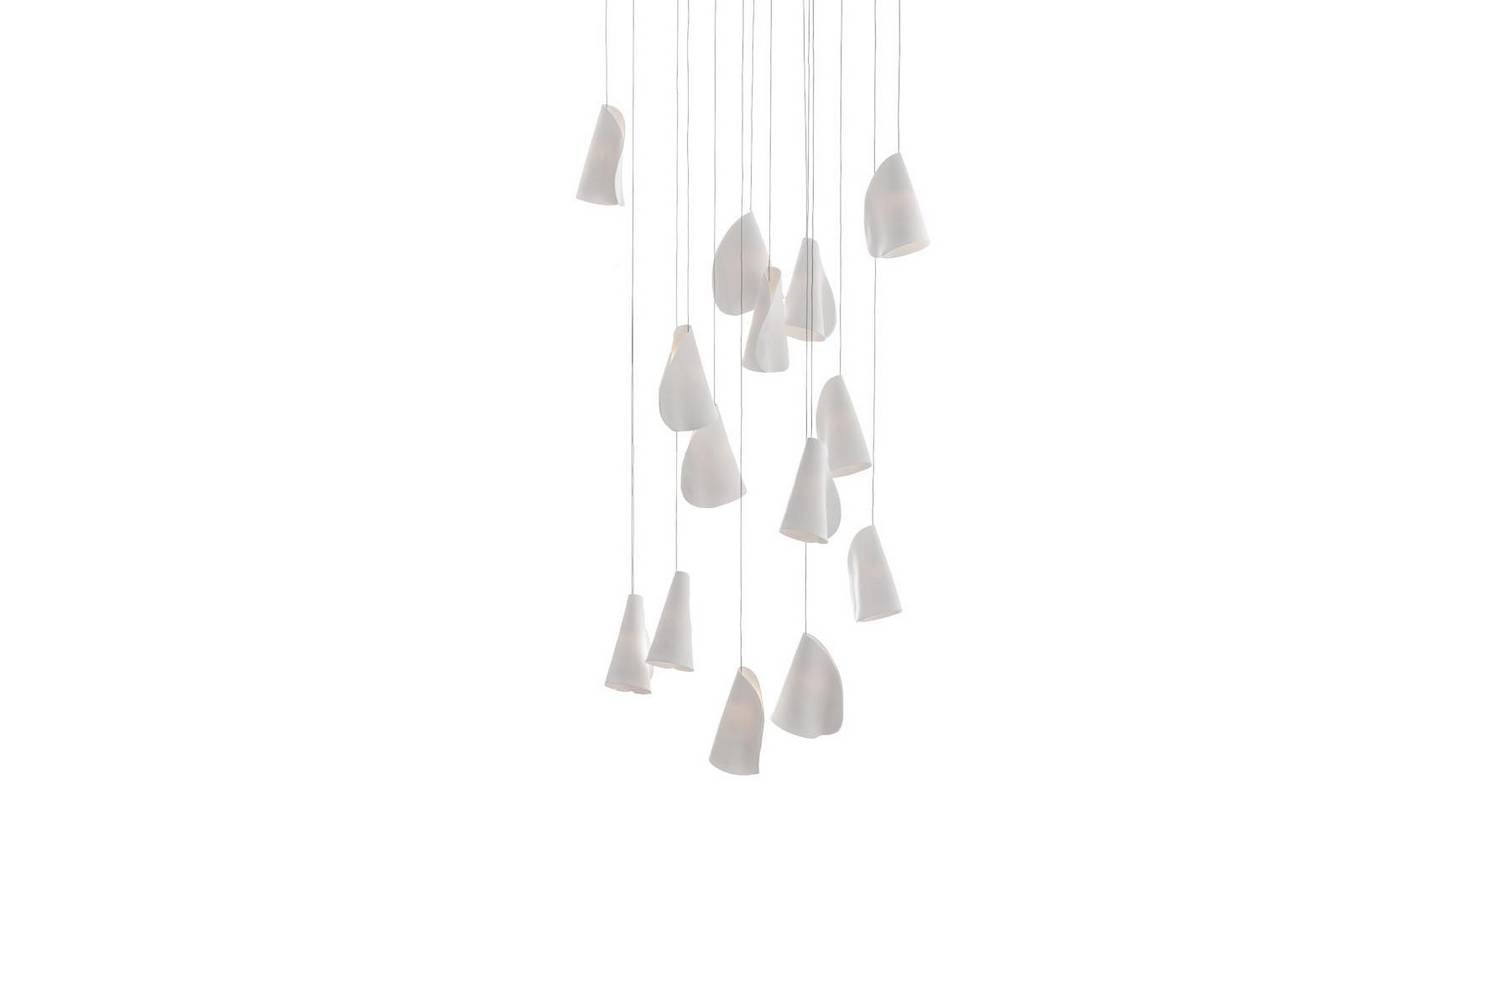 21.14 Standard Suspension Lamp by Omer Arbel for Bocci